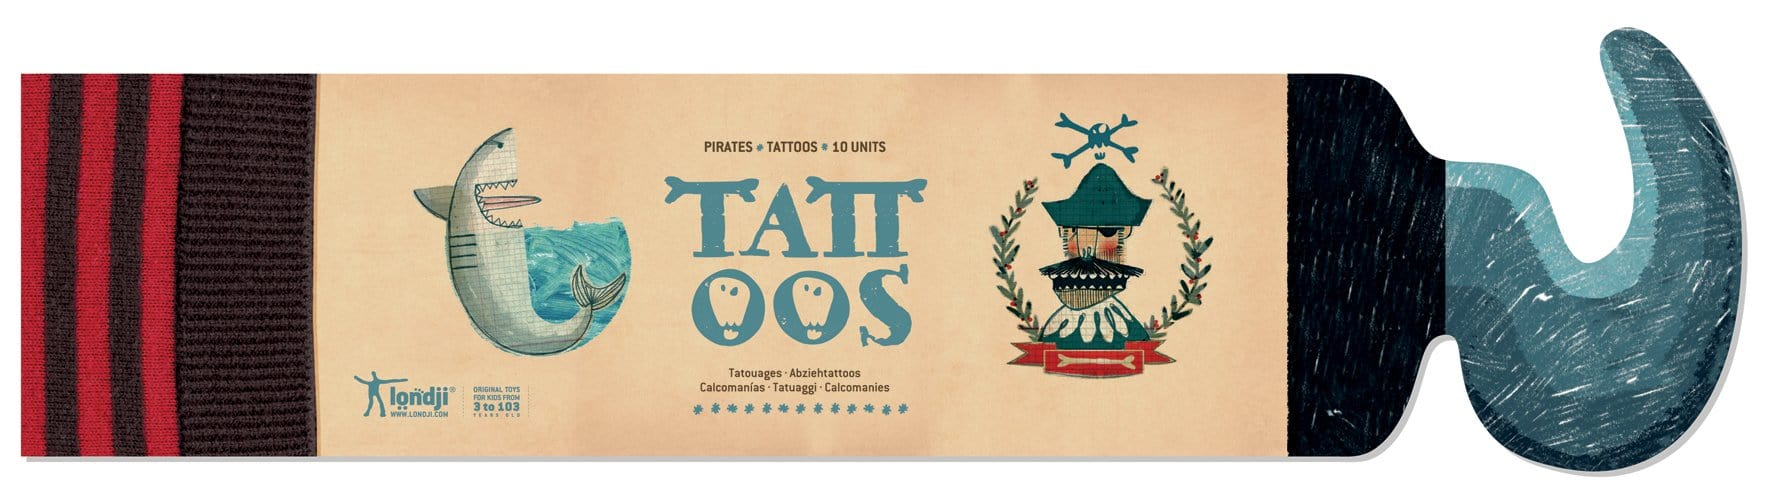 TATTOO PIRATES